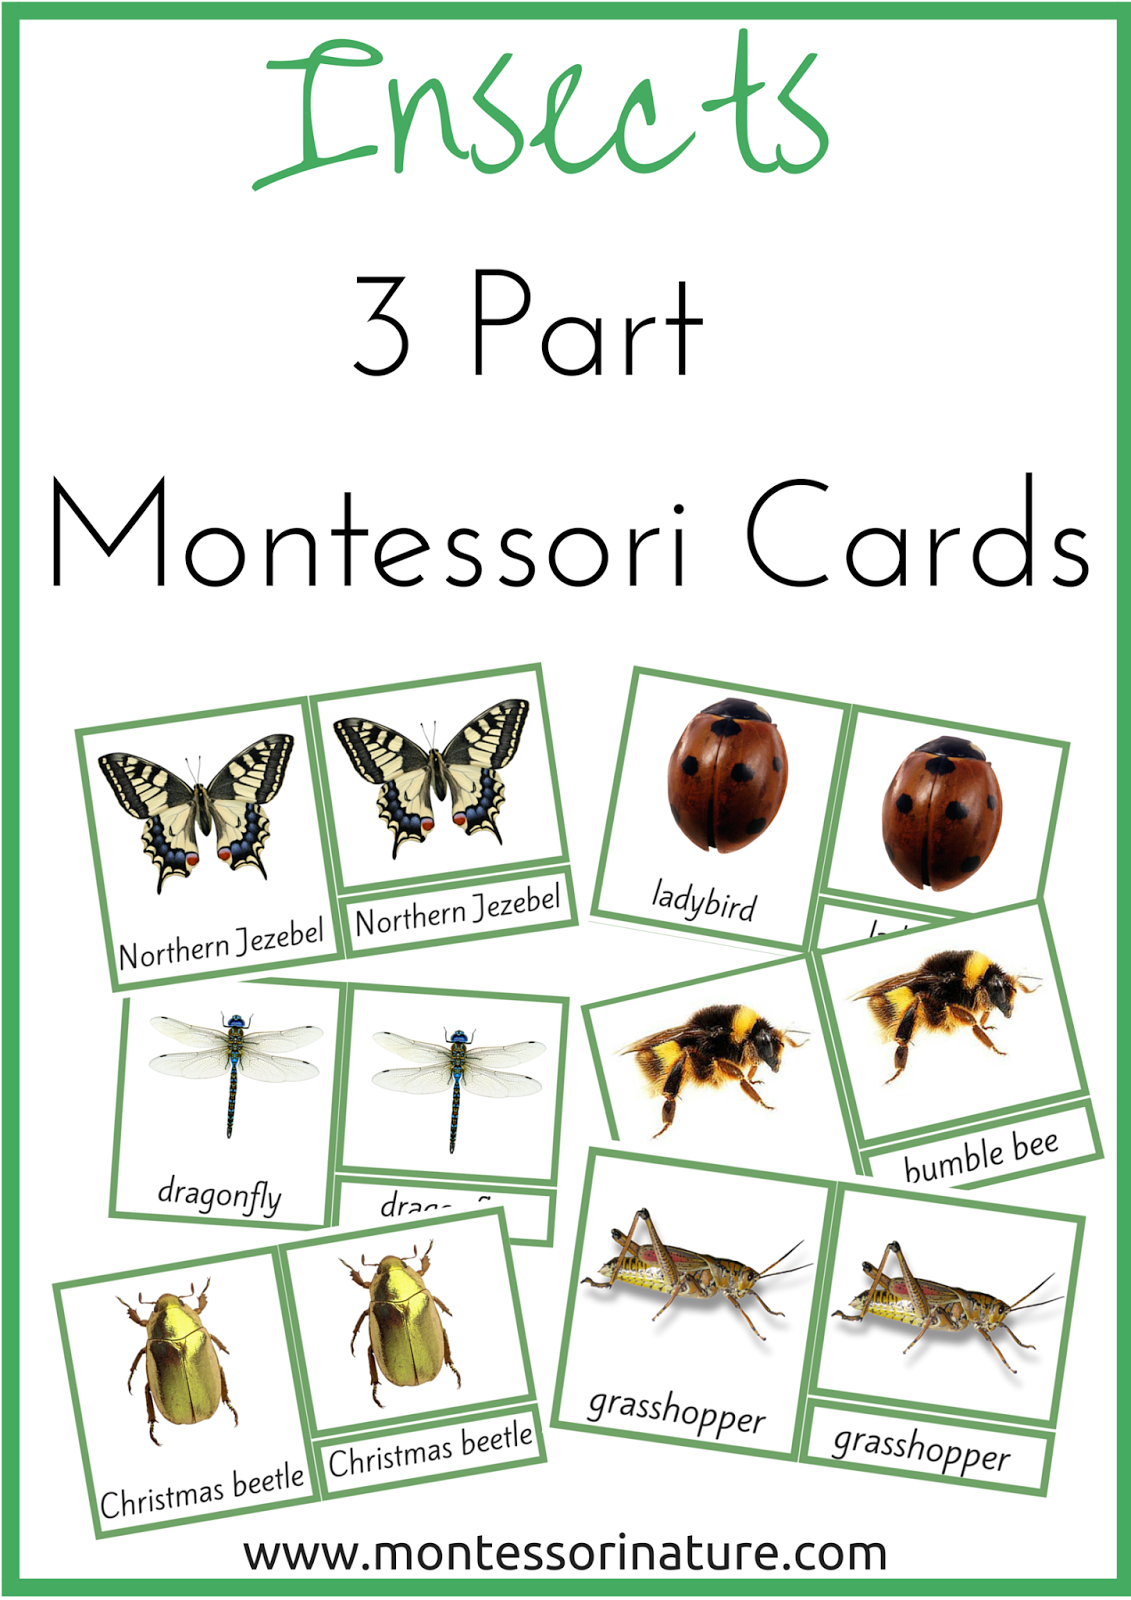 Insects 3 Part Montessori Nomenclature Cards